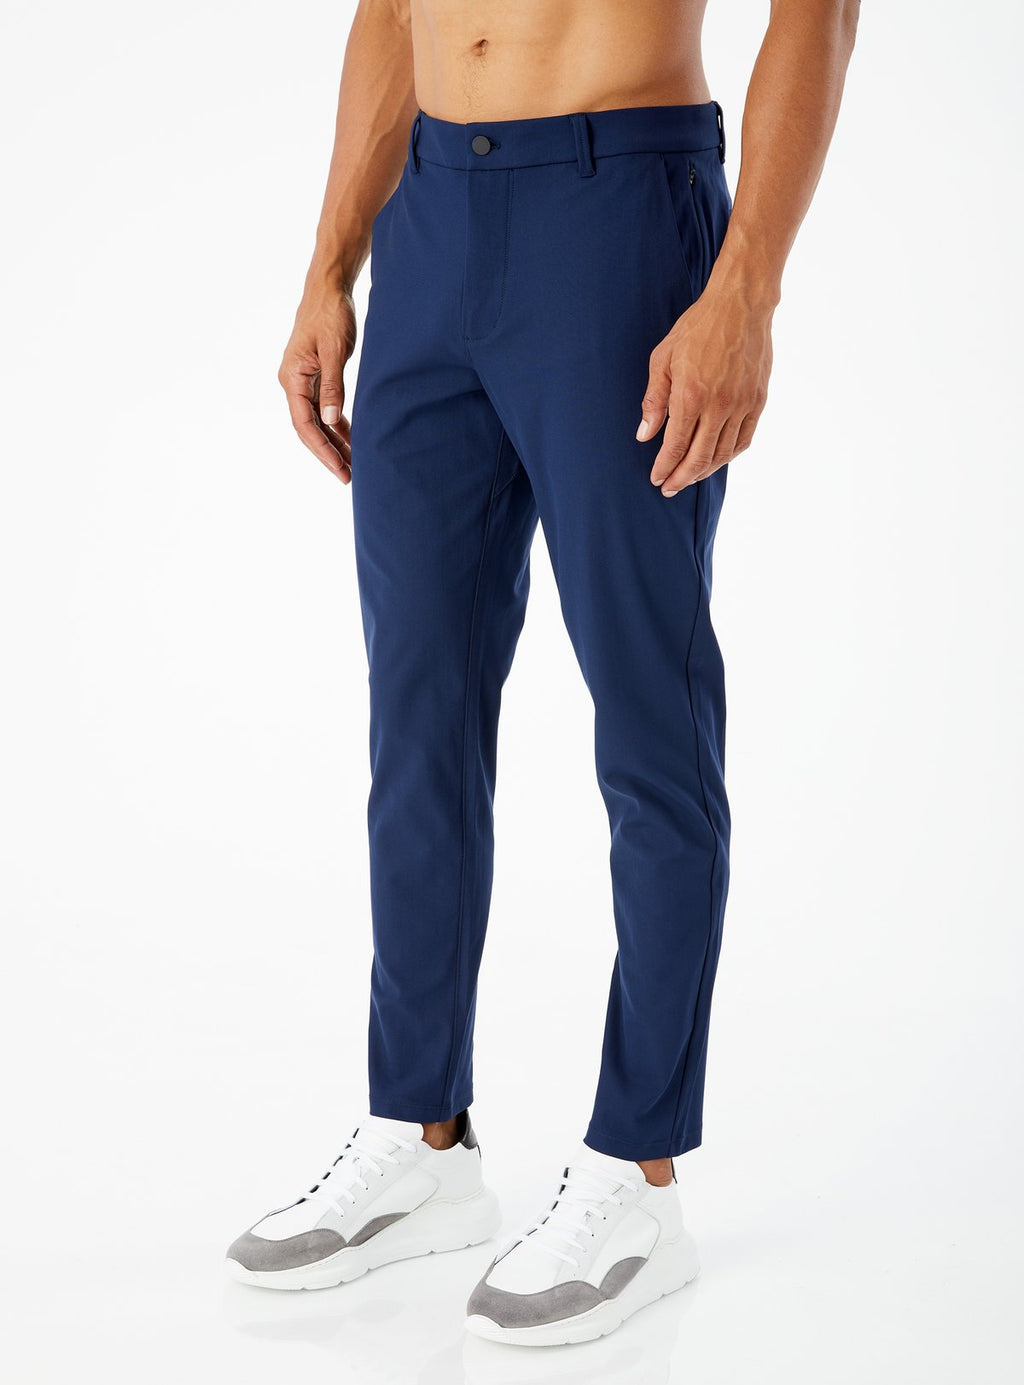 7 Diamonds- Infinity Chino- Navy